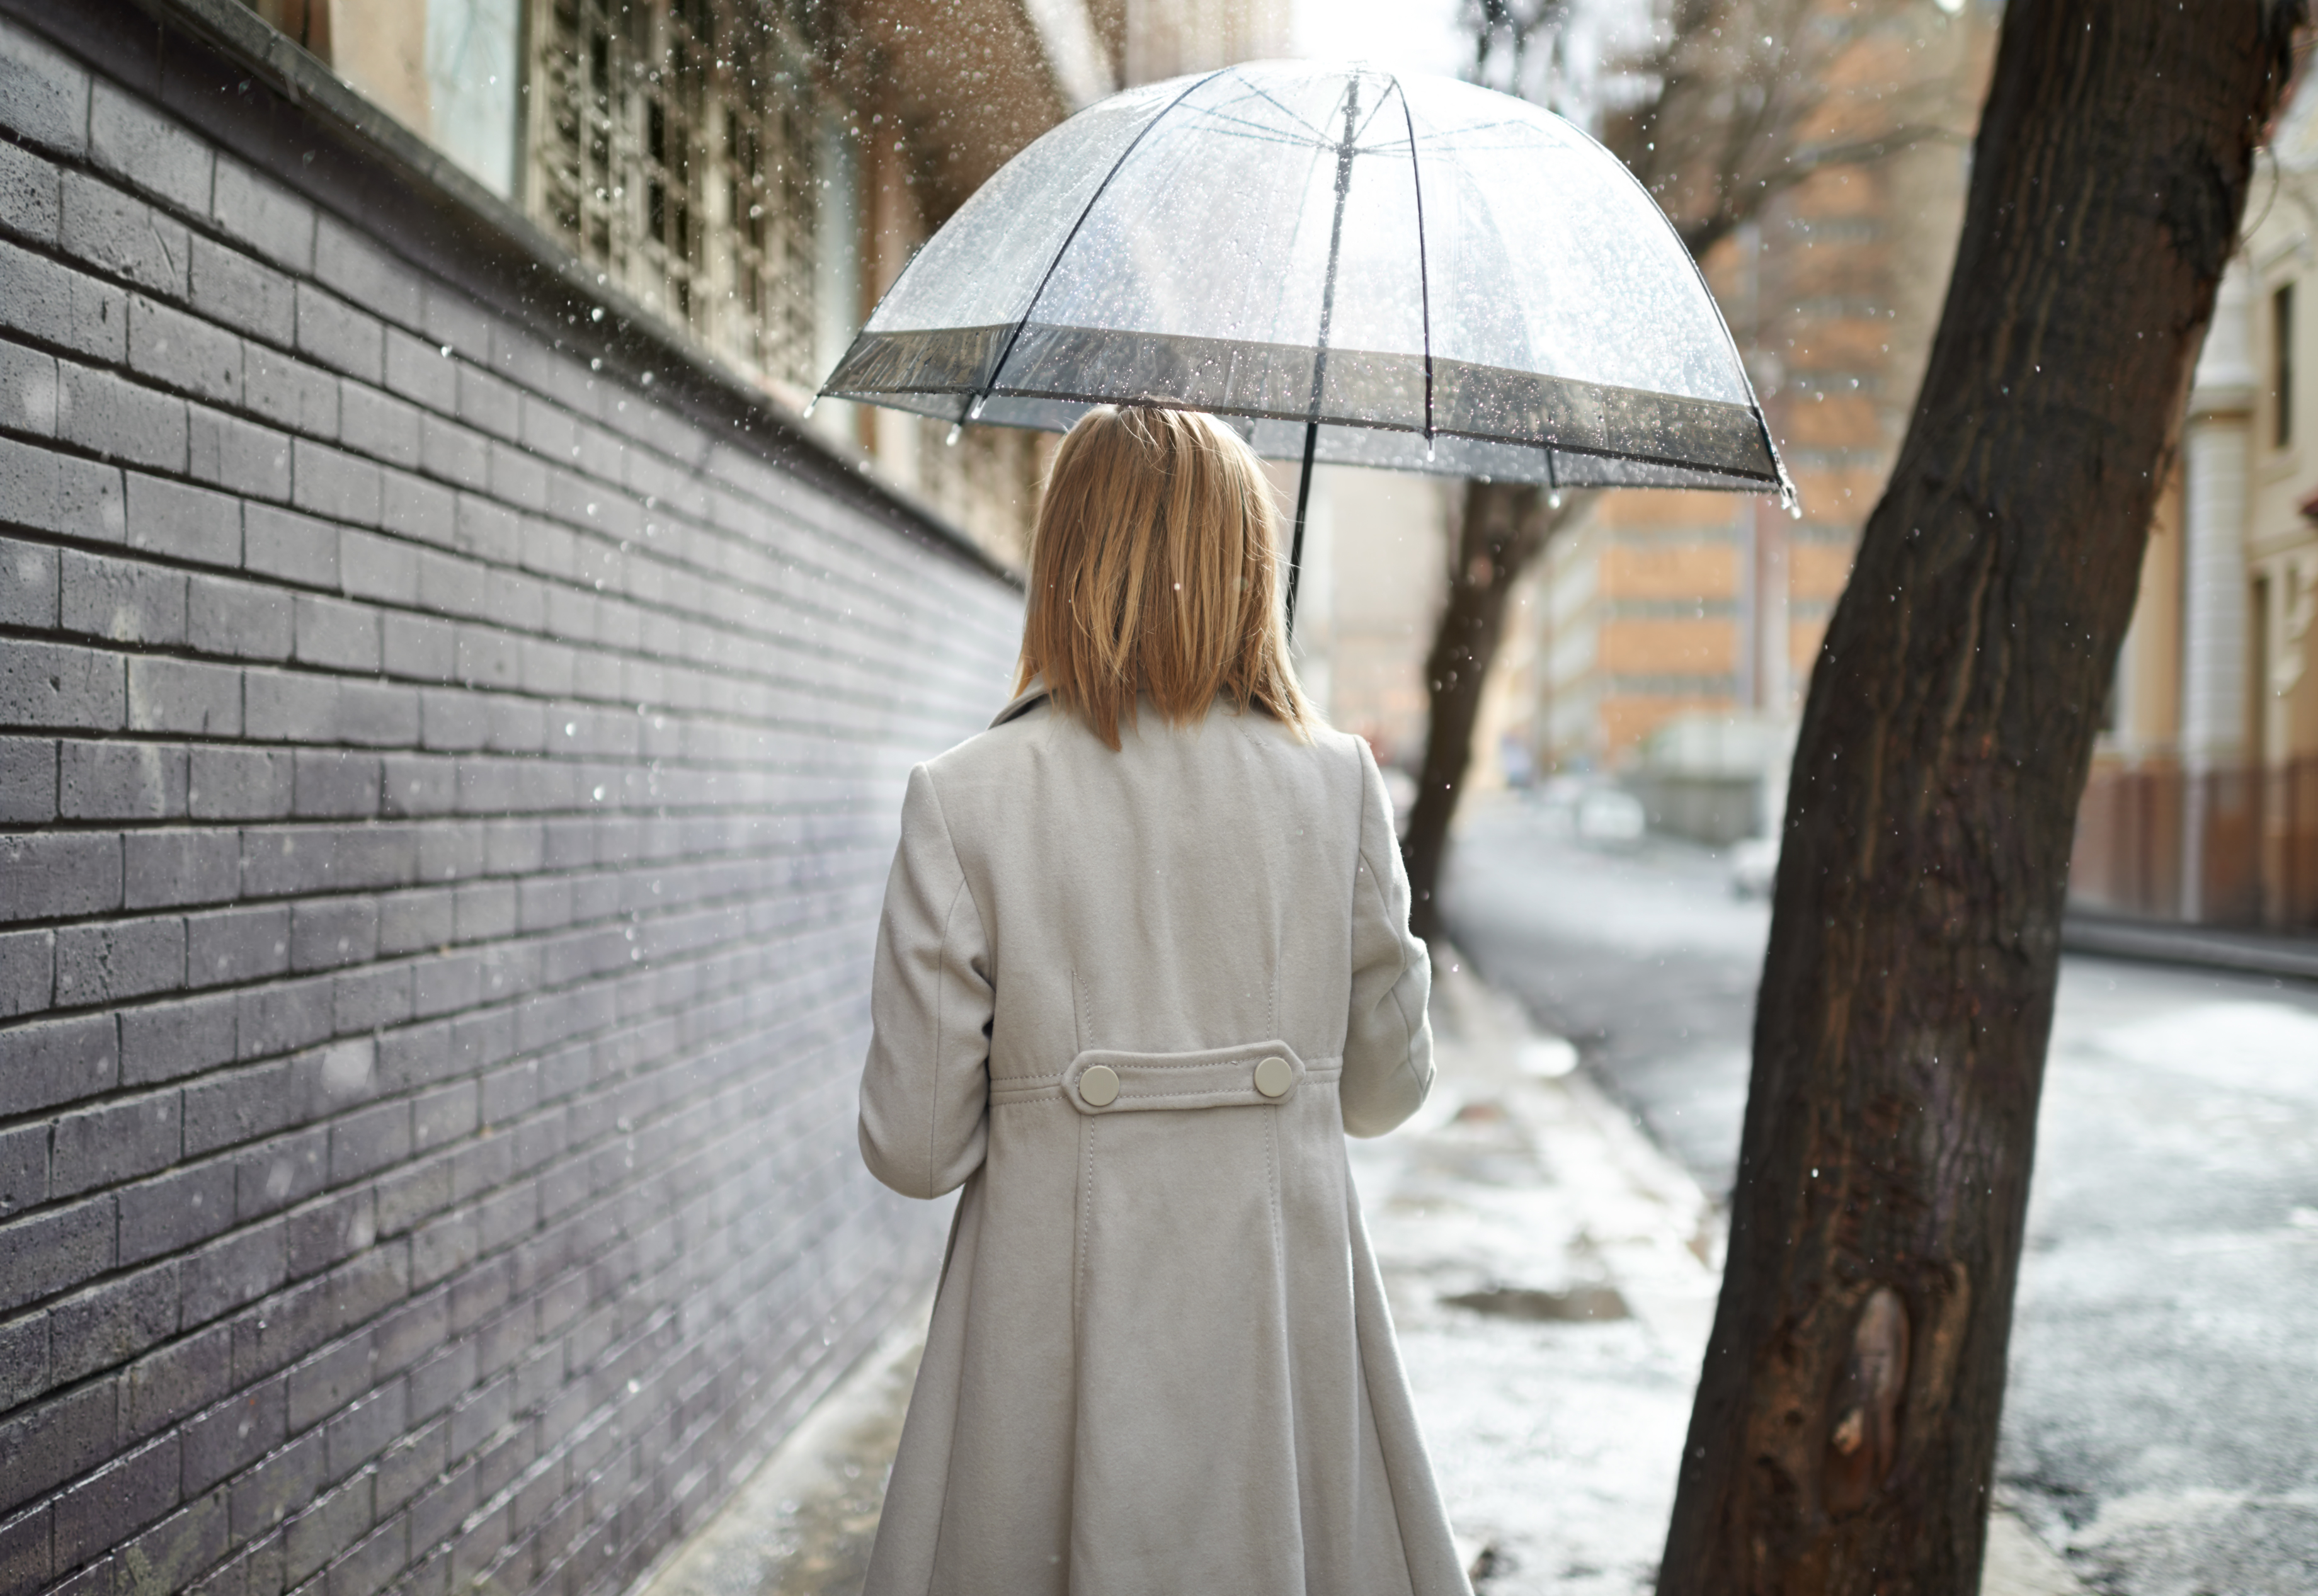 Rearview shot of a woman walking down a street in the rain and holding an umbrella